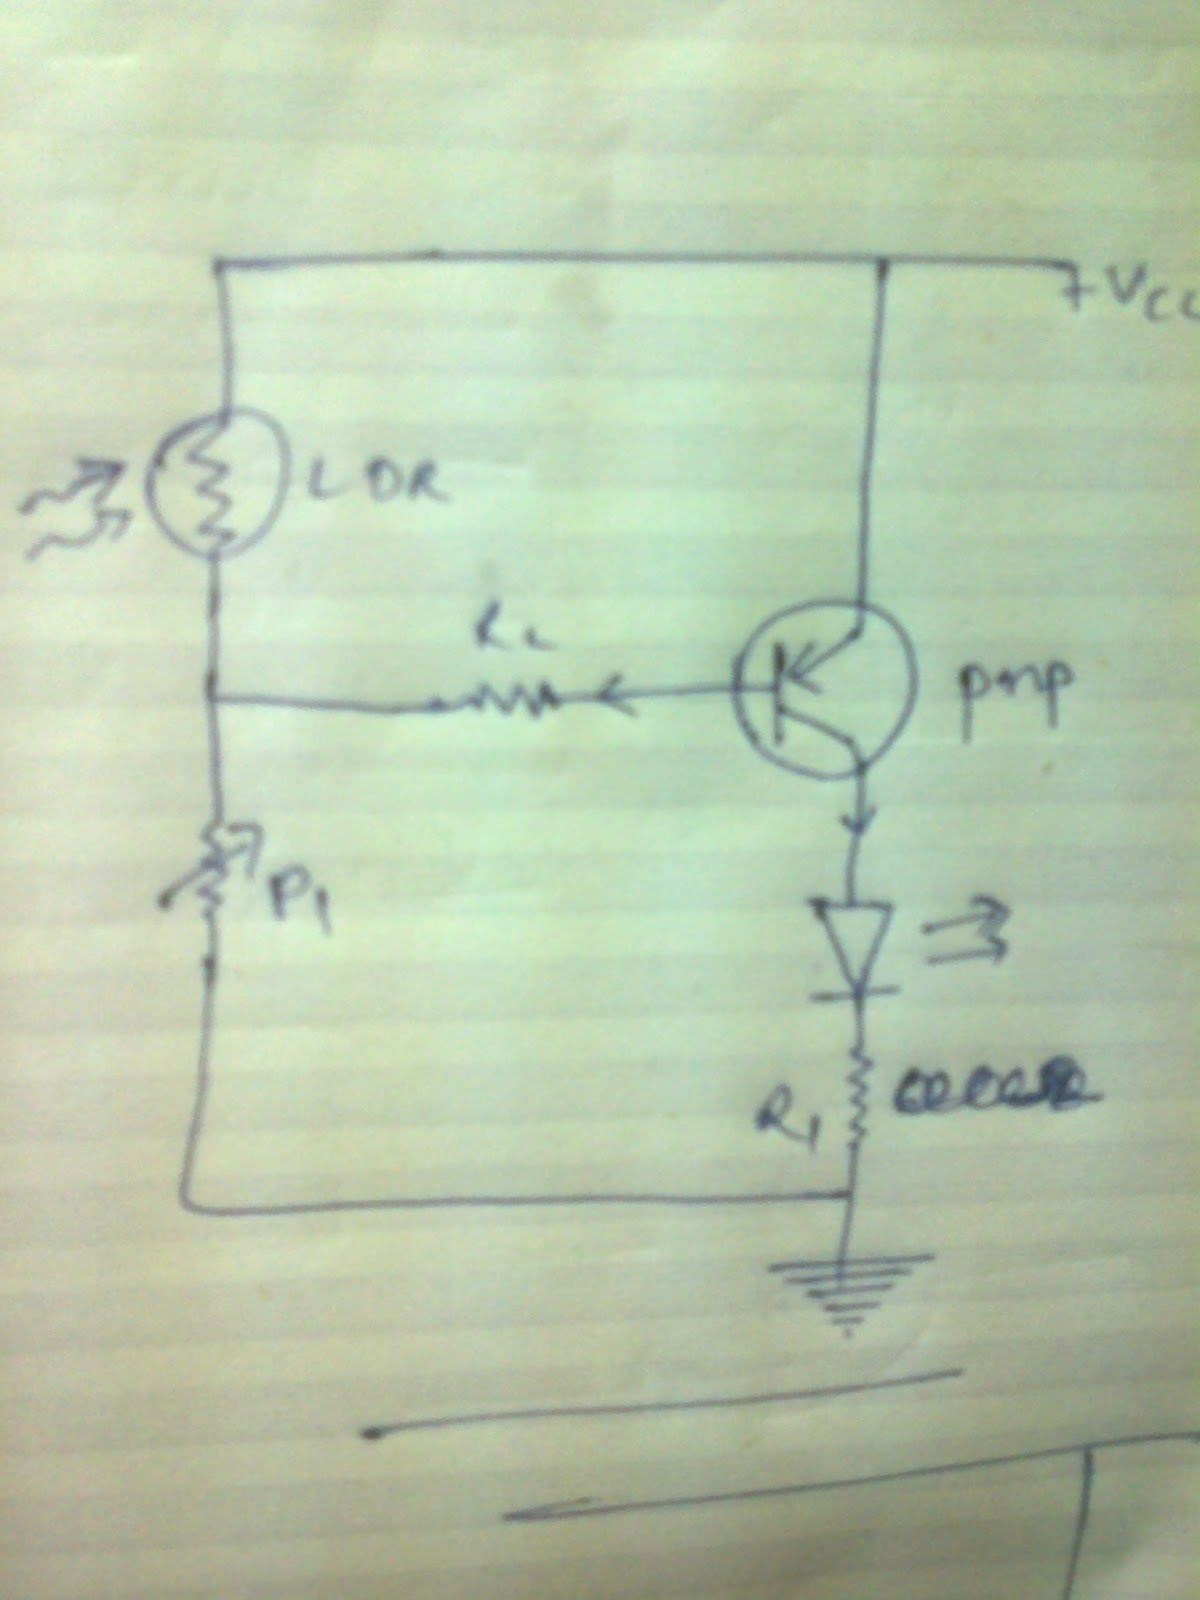 Automatic Night Lamp Using Pnp Transistorand Ldr Electronic Projects Circuit Diagram Transistor